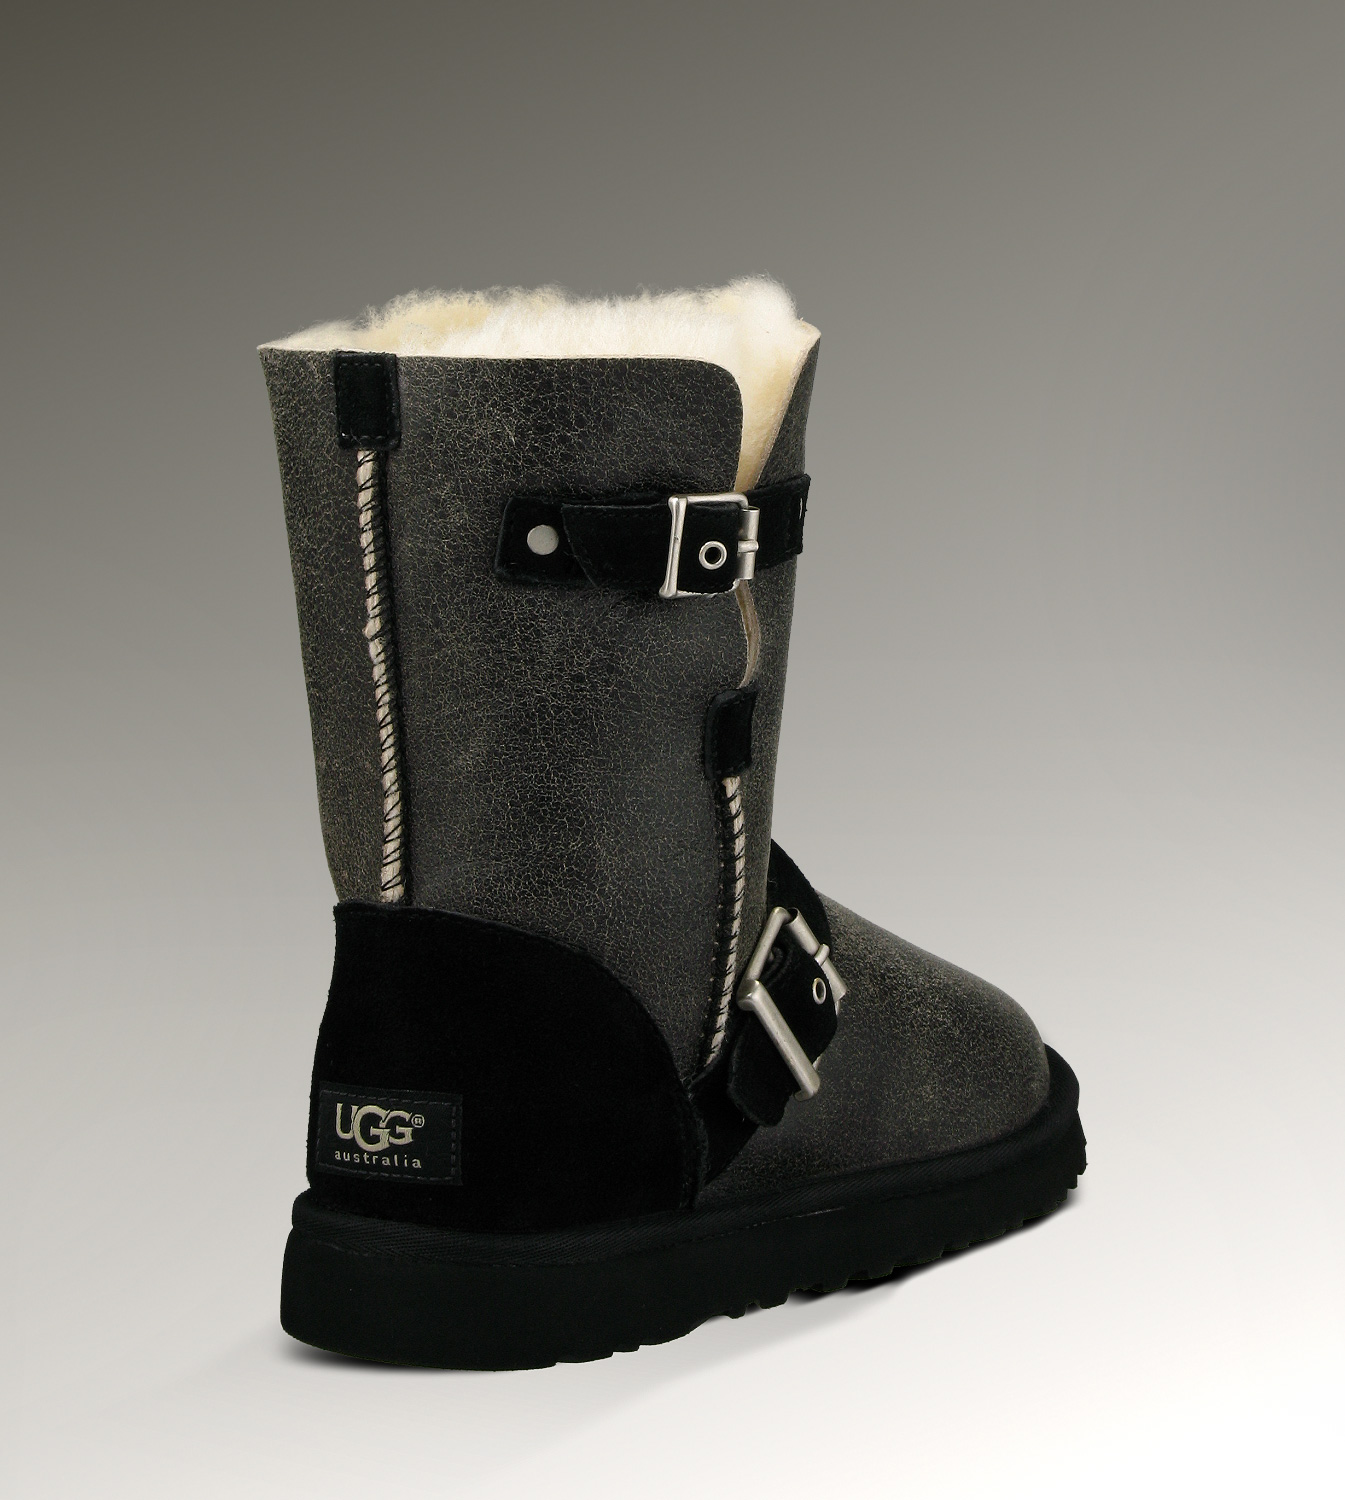 UGG Classic Short Dylyn 1001202 Jacket Black Boots